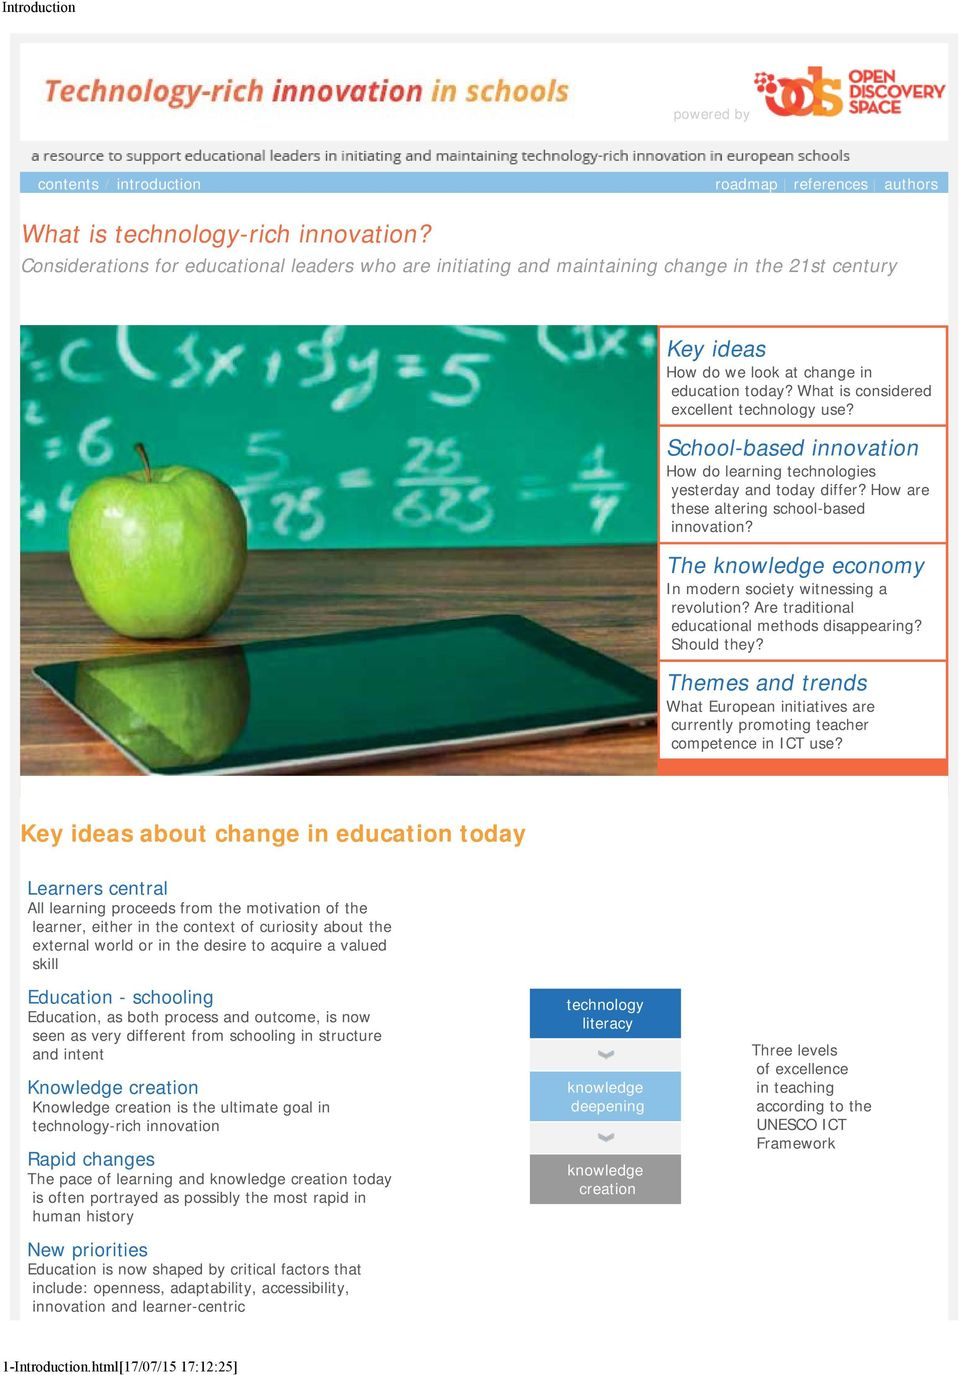 School-based innovation How do learning technologies yesterday and today differ? How are these altering school-based innovation? The knowledge economy In modern society witnessing a revolution?